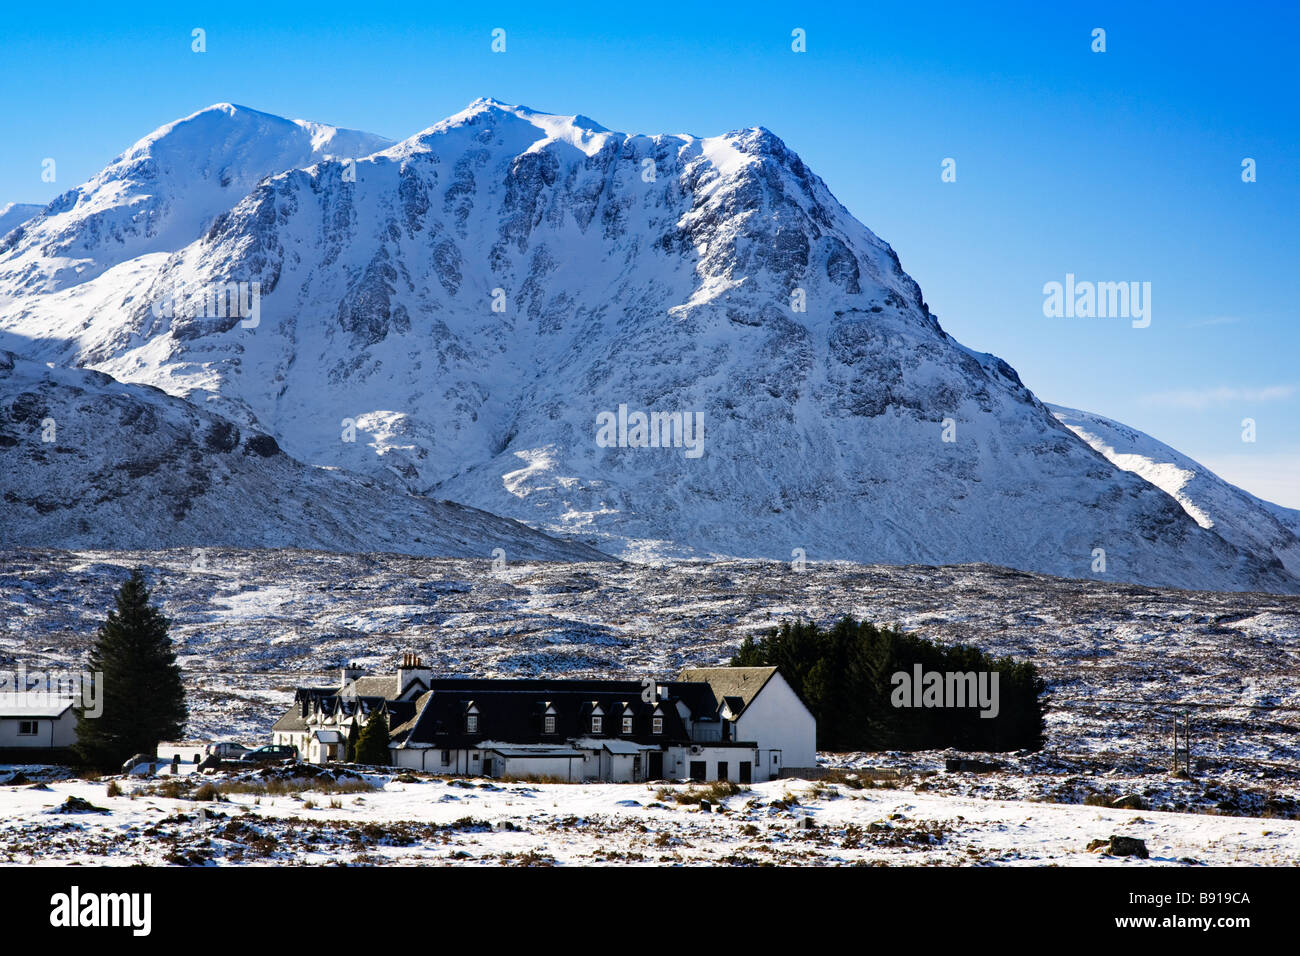 Creise and the Kings House Hotel in Winter, Rannoch Moor, Lochaber, Scotland. - Stock Image